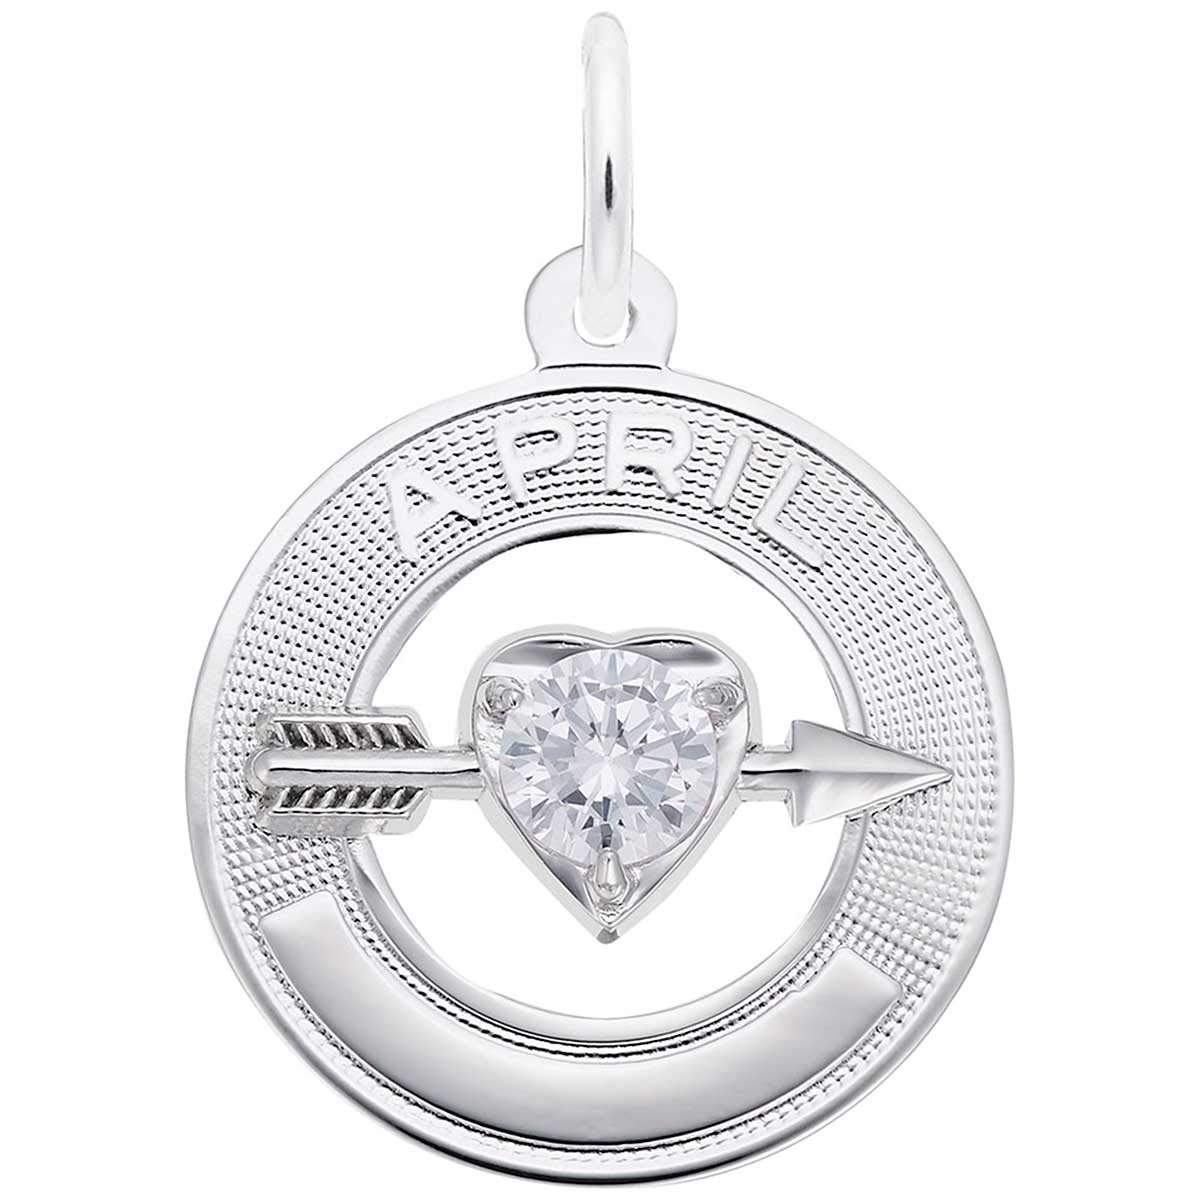 Rembrandt Charms April Birthday Charm, Sterling Silver